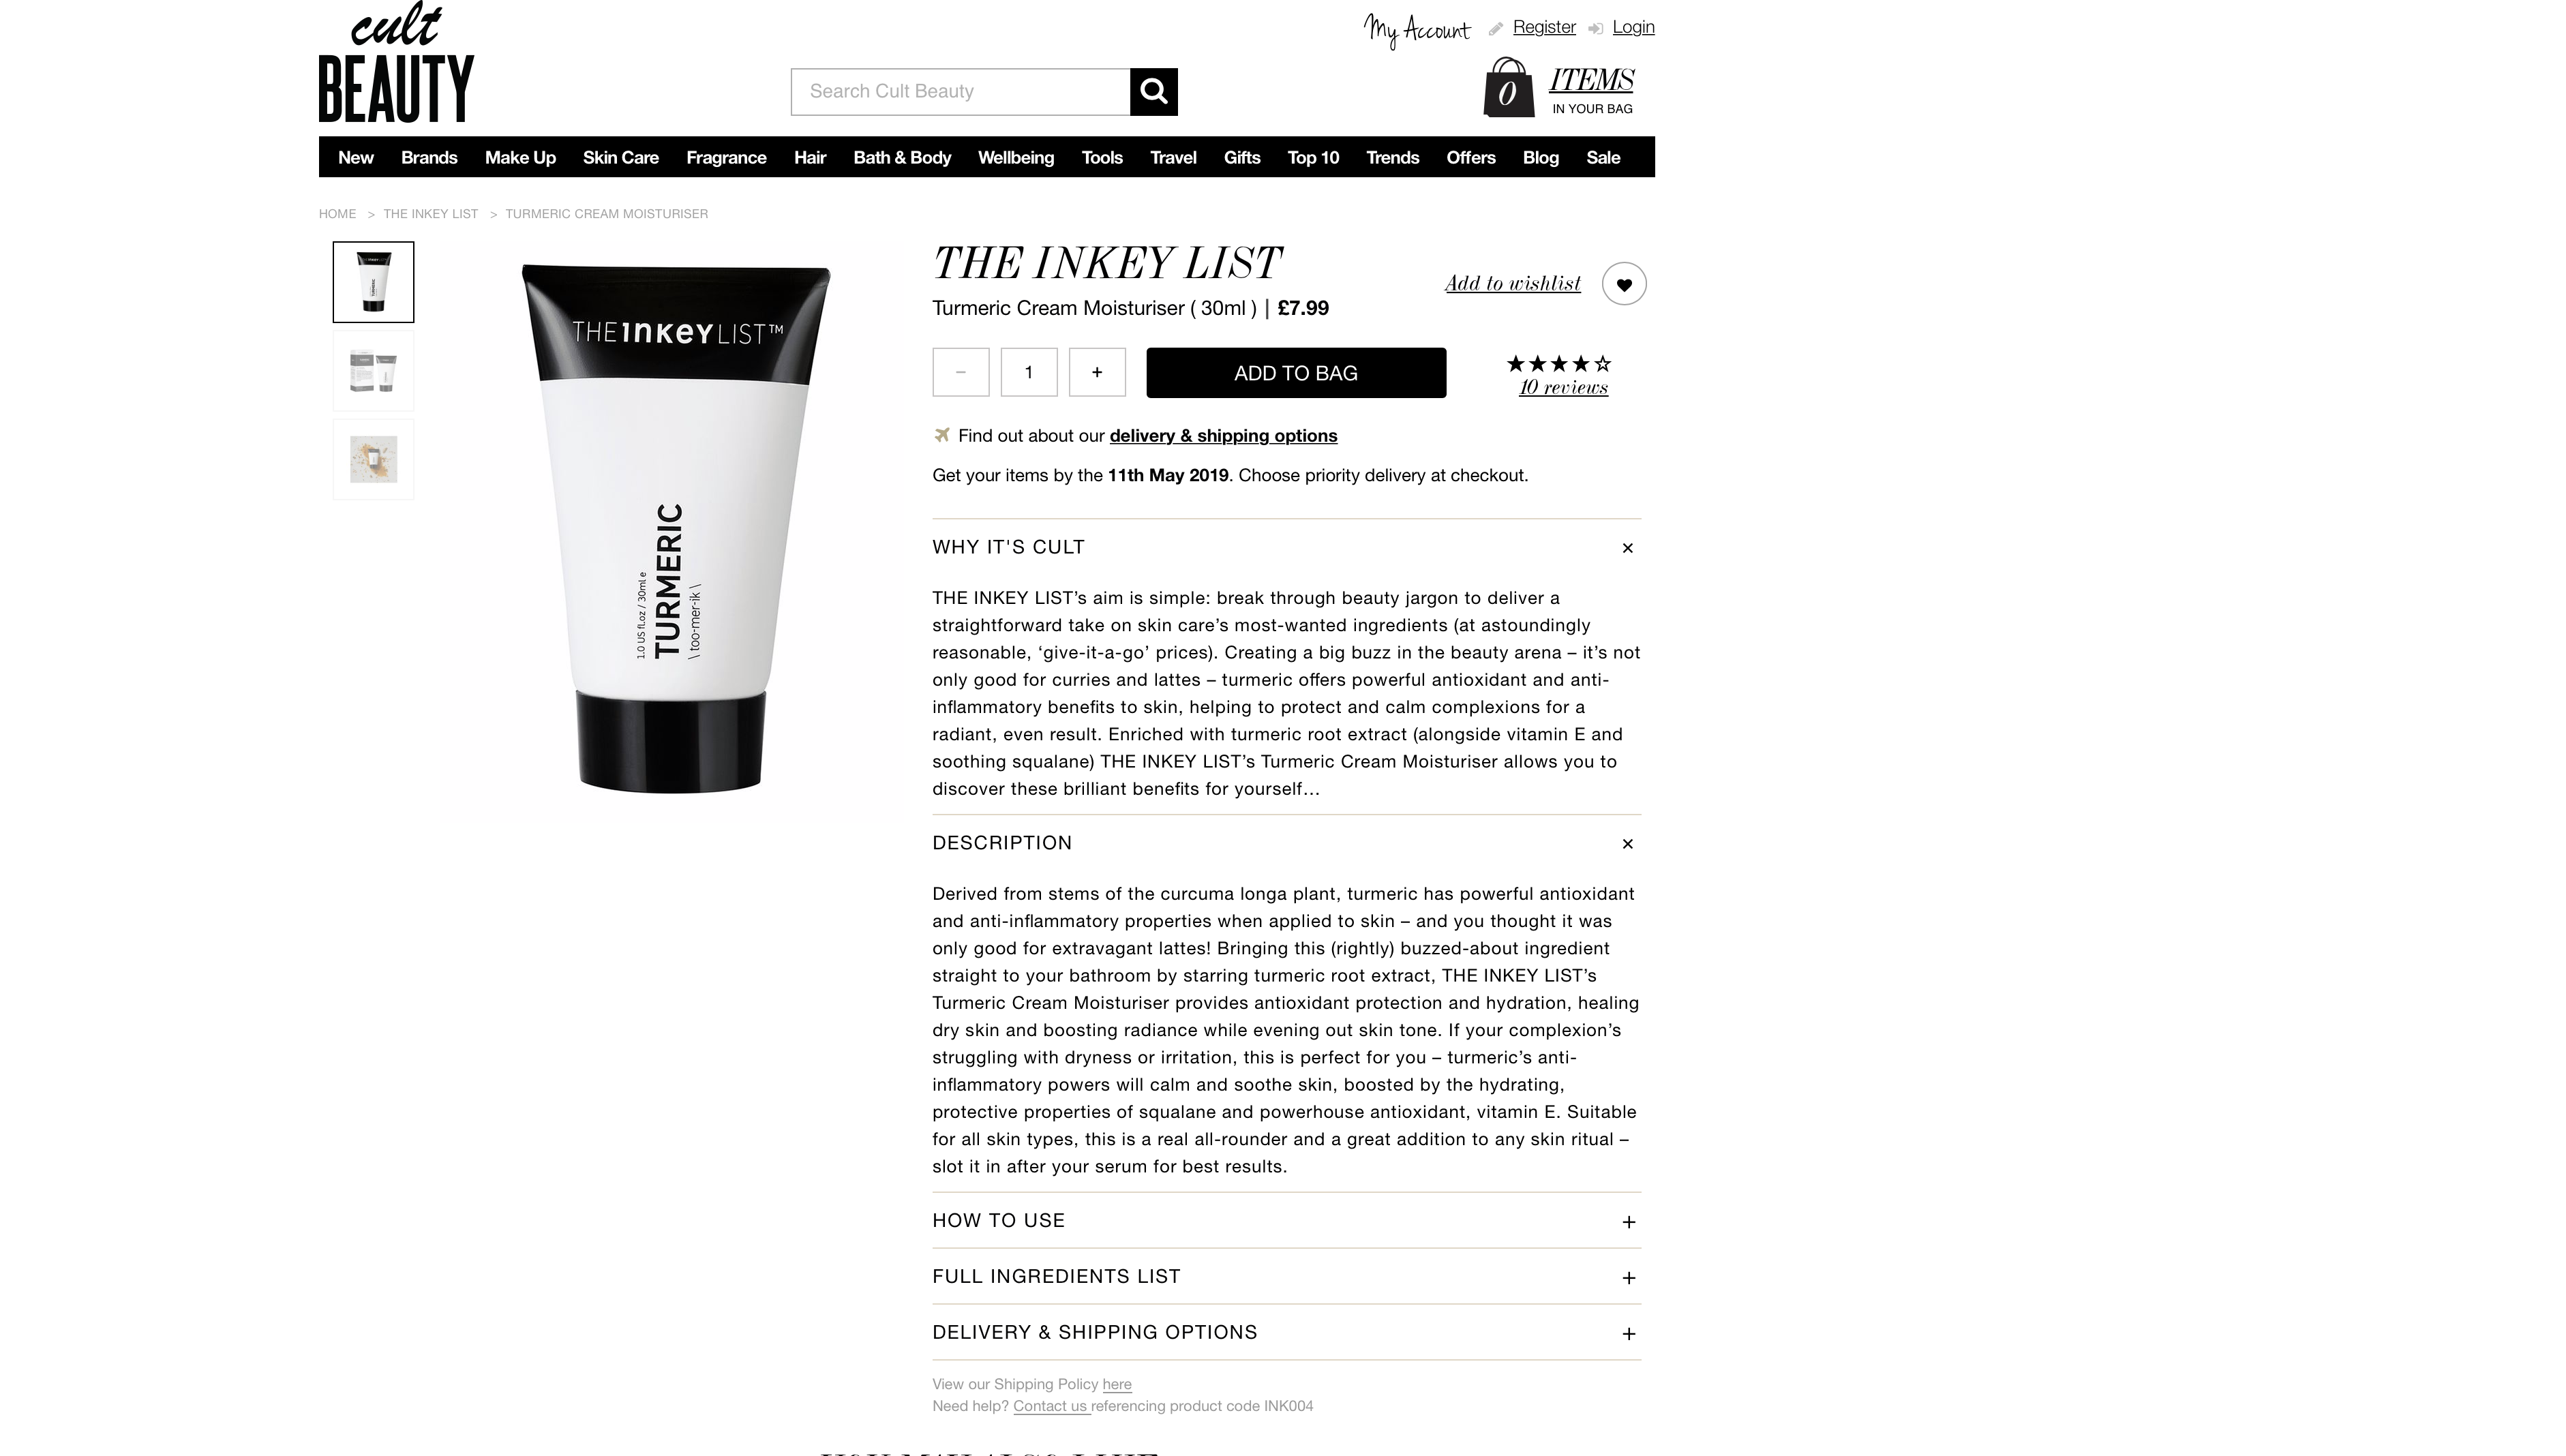 The Inkey List Tumeric Cream Moisturizer